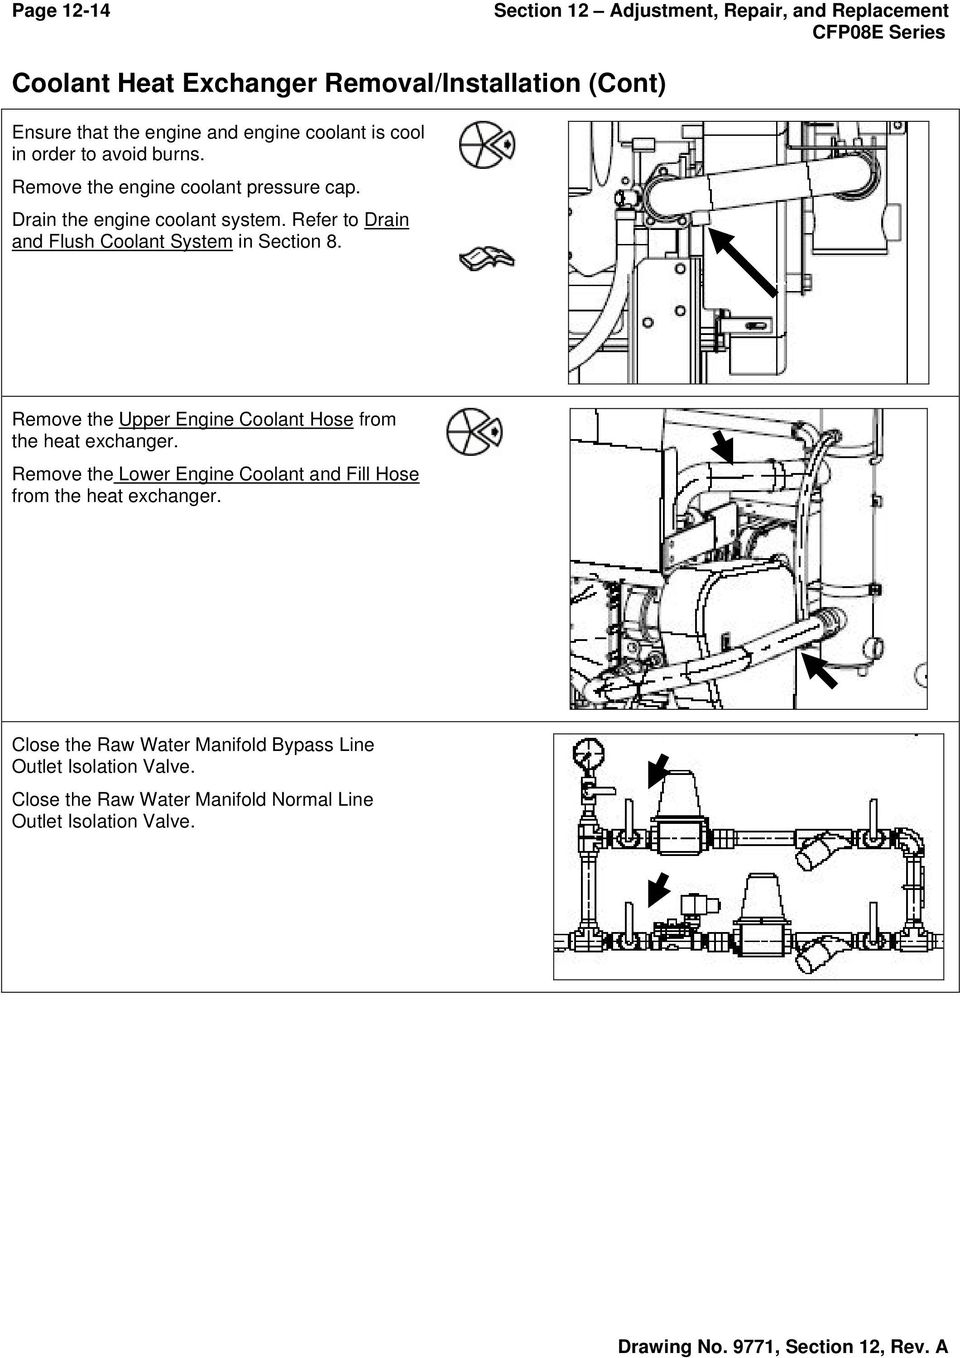 Refer to Drain and Flush Coolant System in Section 8. Remove the Upper Engine Coolant Hose from the heat exchanger.